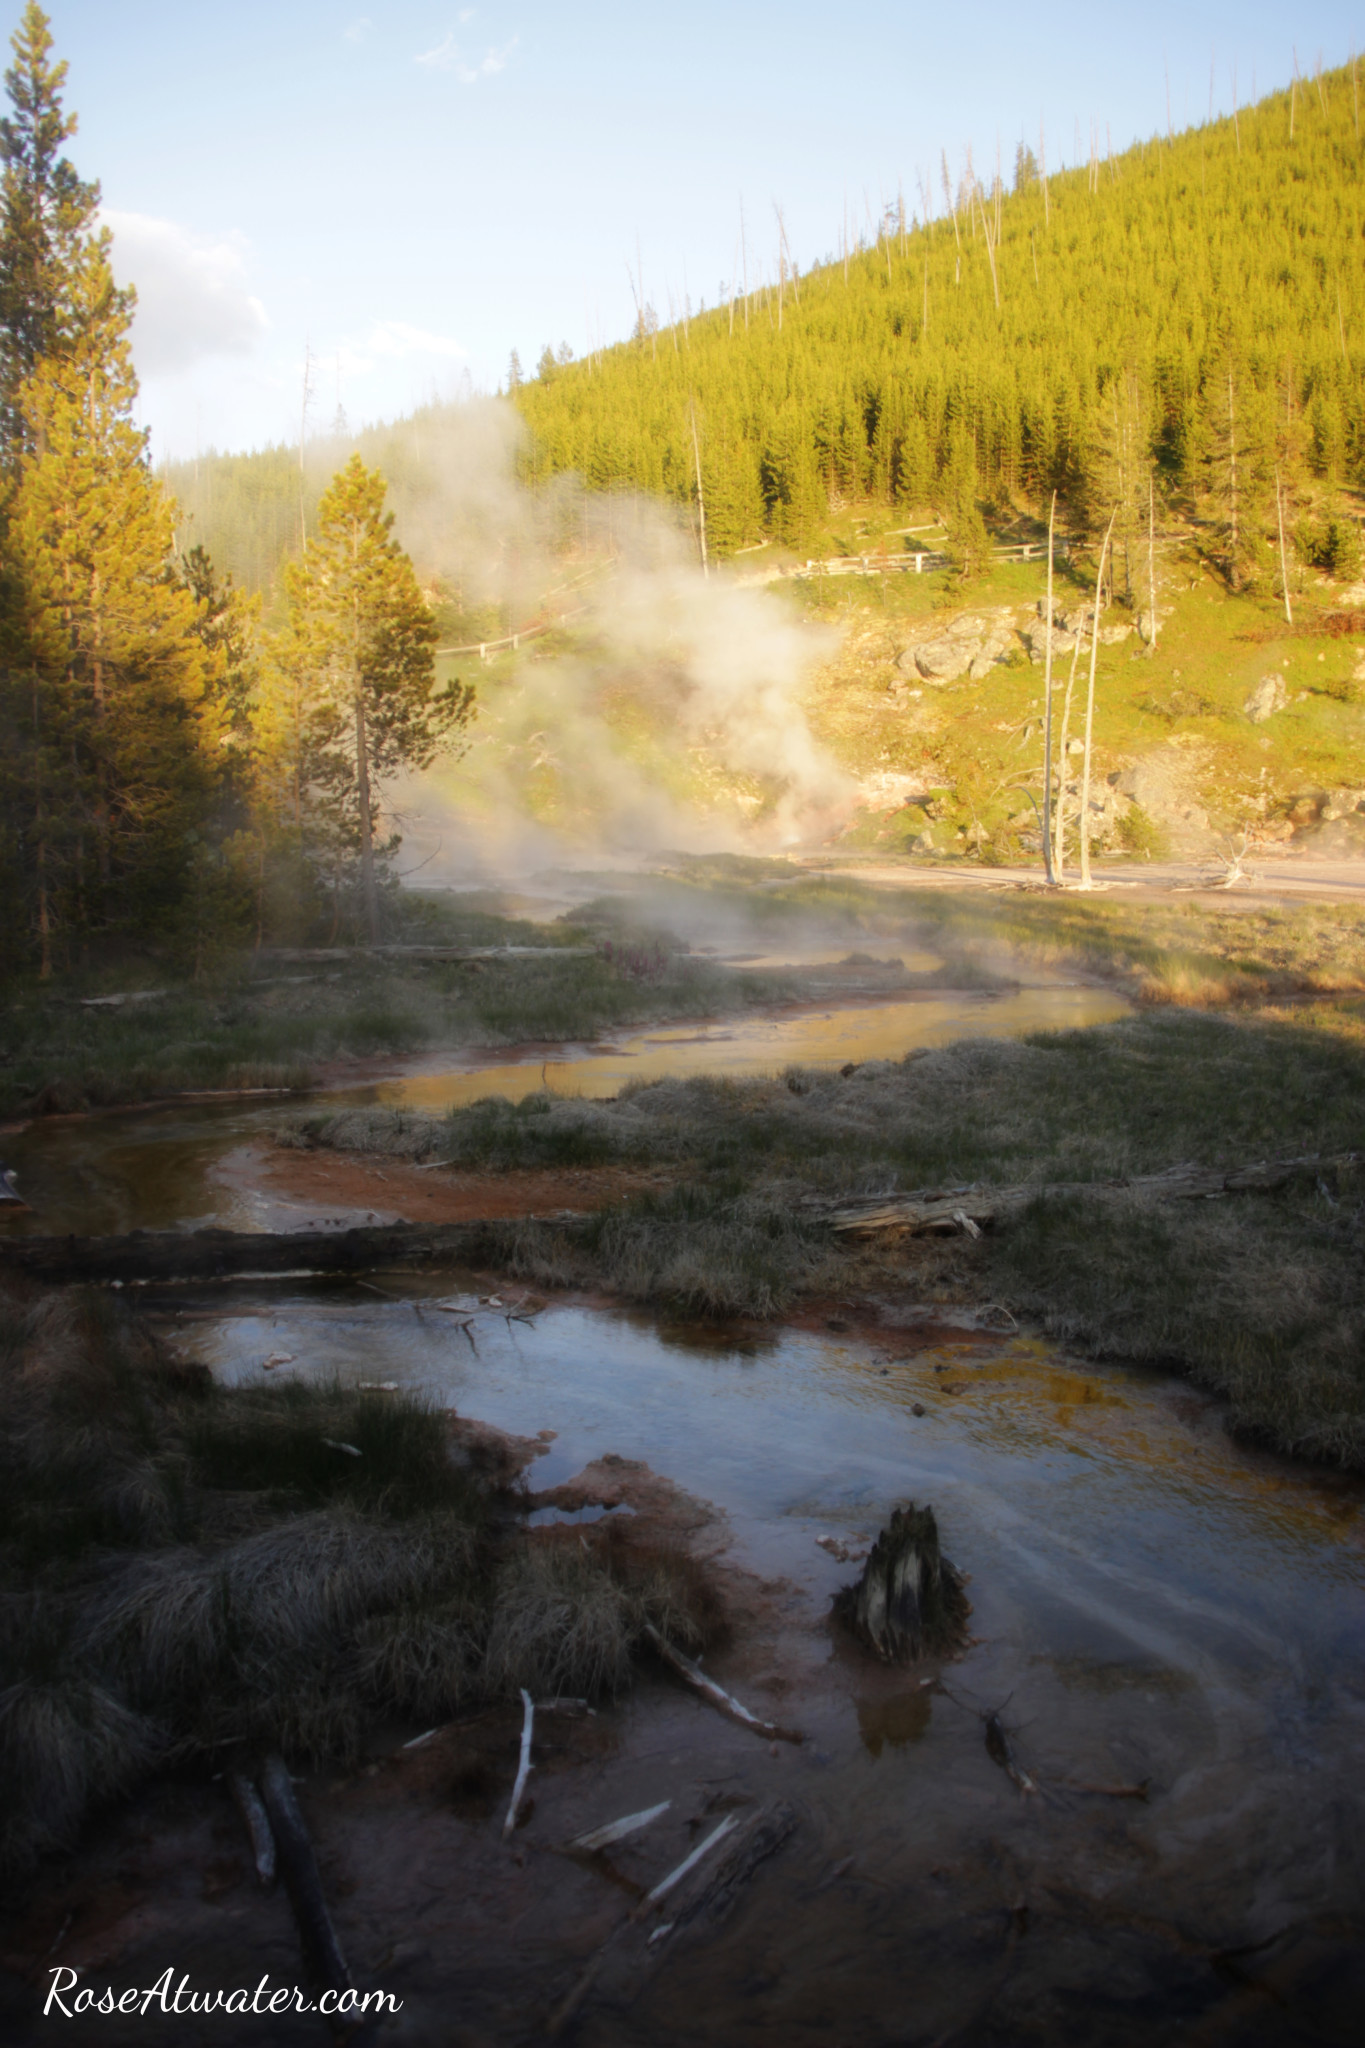 Road Trip 2015: Day 9 {Yellowstone, Old Faithful, Paint Pots & Wildlife!}